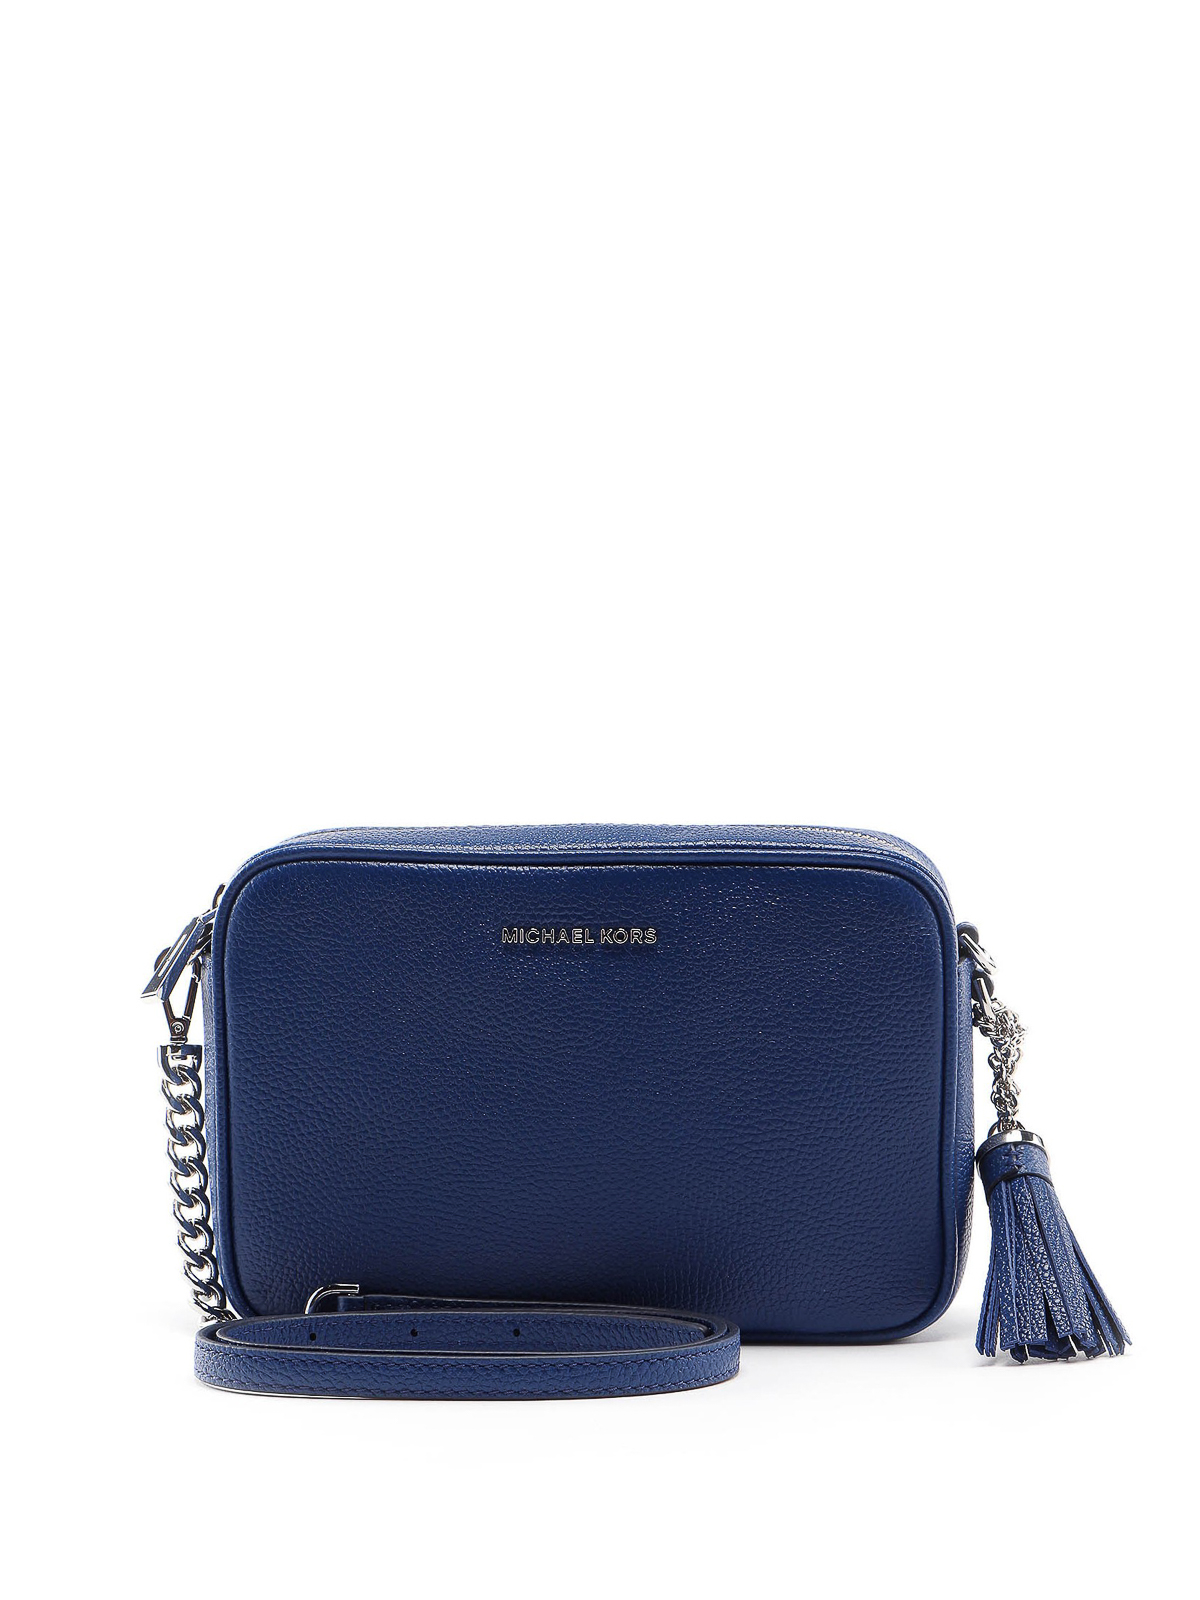 Michael Kors Camera bag Jet set media borse a tracolla